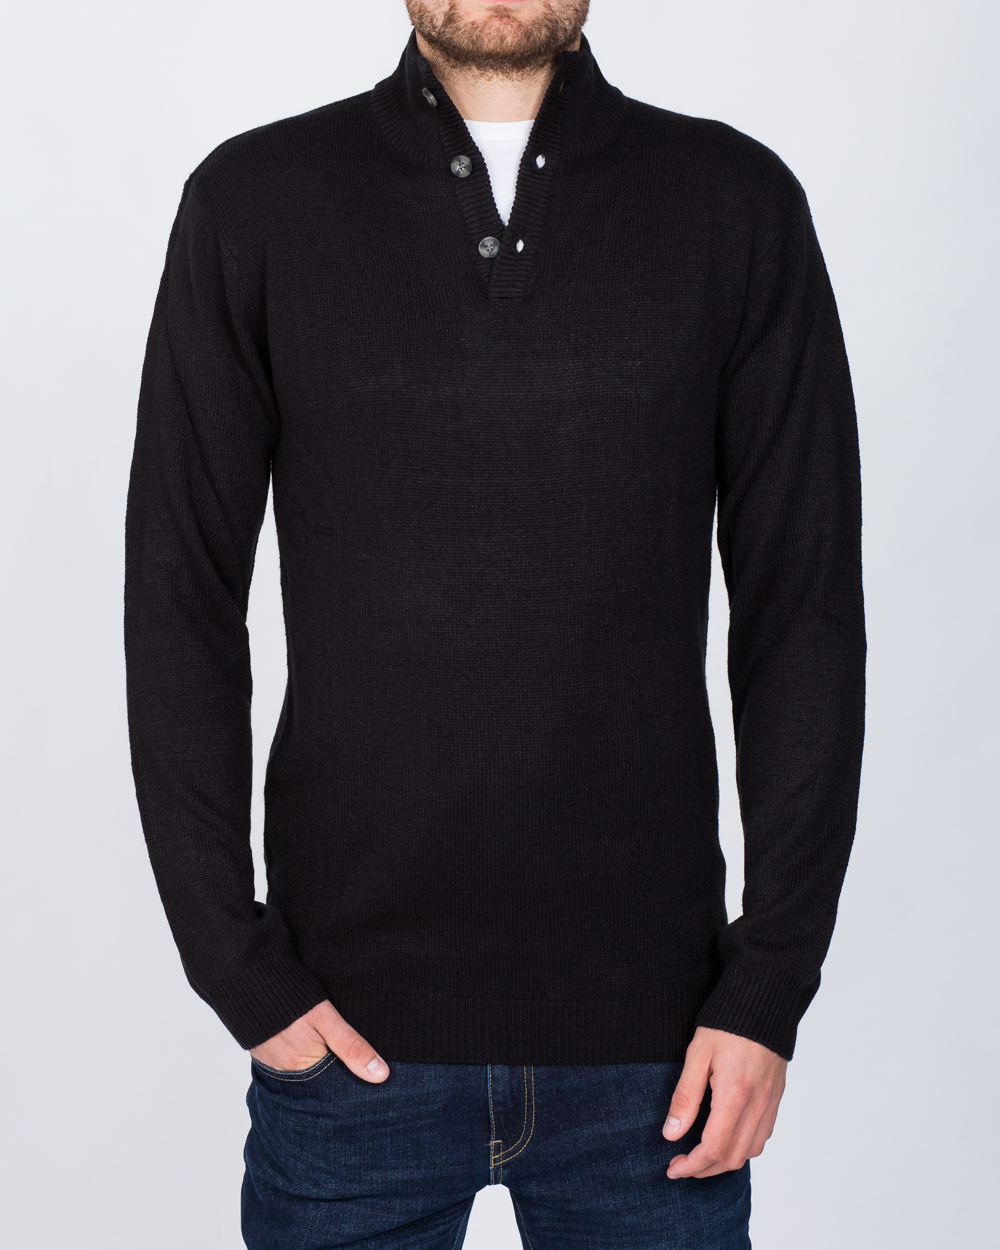 Peter Gribby 3 Button Jumper (black)